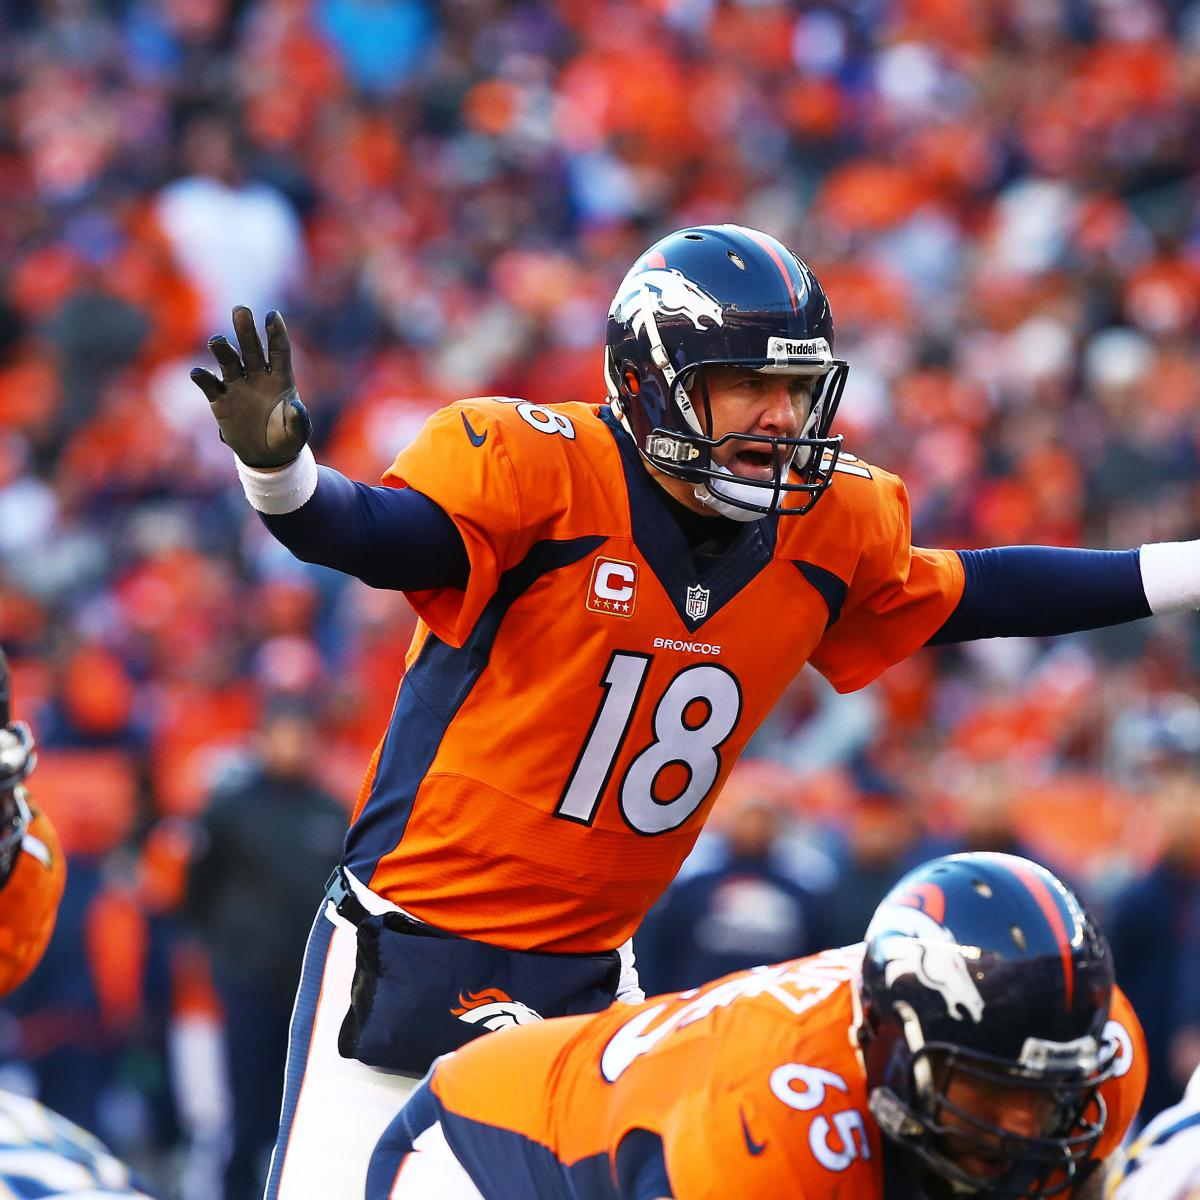 Denver To Hawaii: Peyton Manning Puts Audibles To Good Use With Omaha